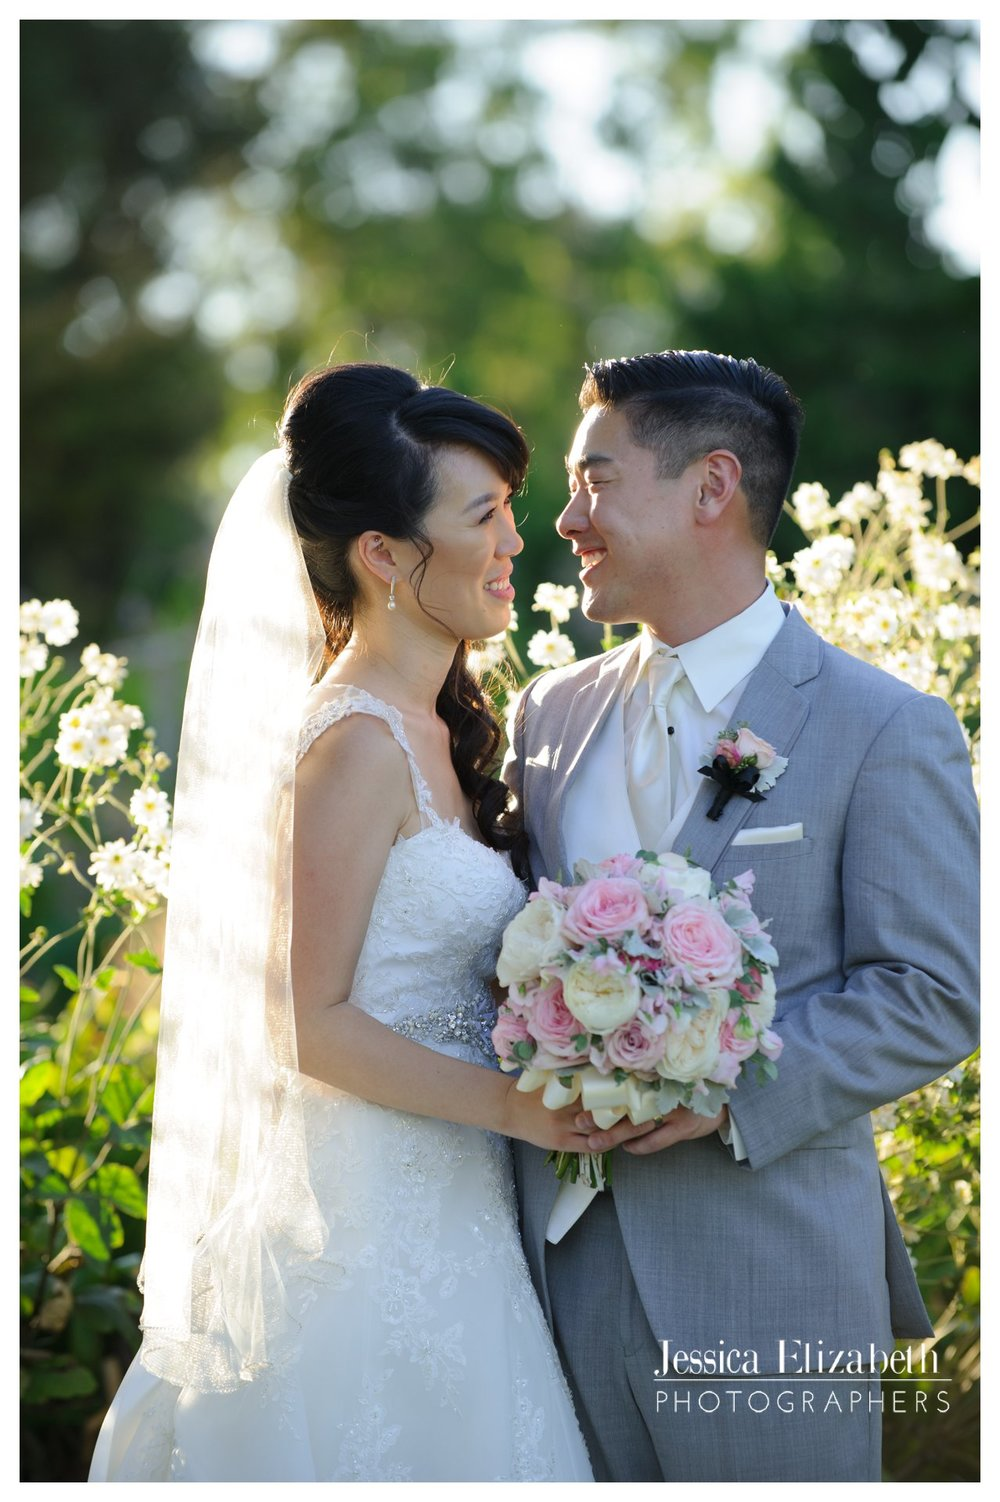 25-South-Coast-Botanic-Garden-Palos-Verdes-Wedding-Photography-by-Jessica-Elizabeth1.jpg